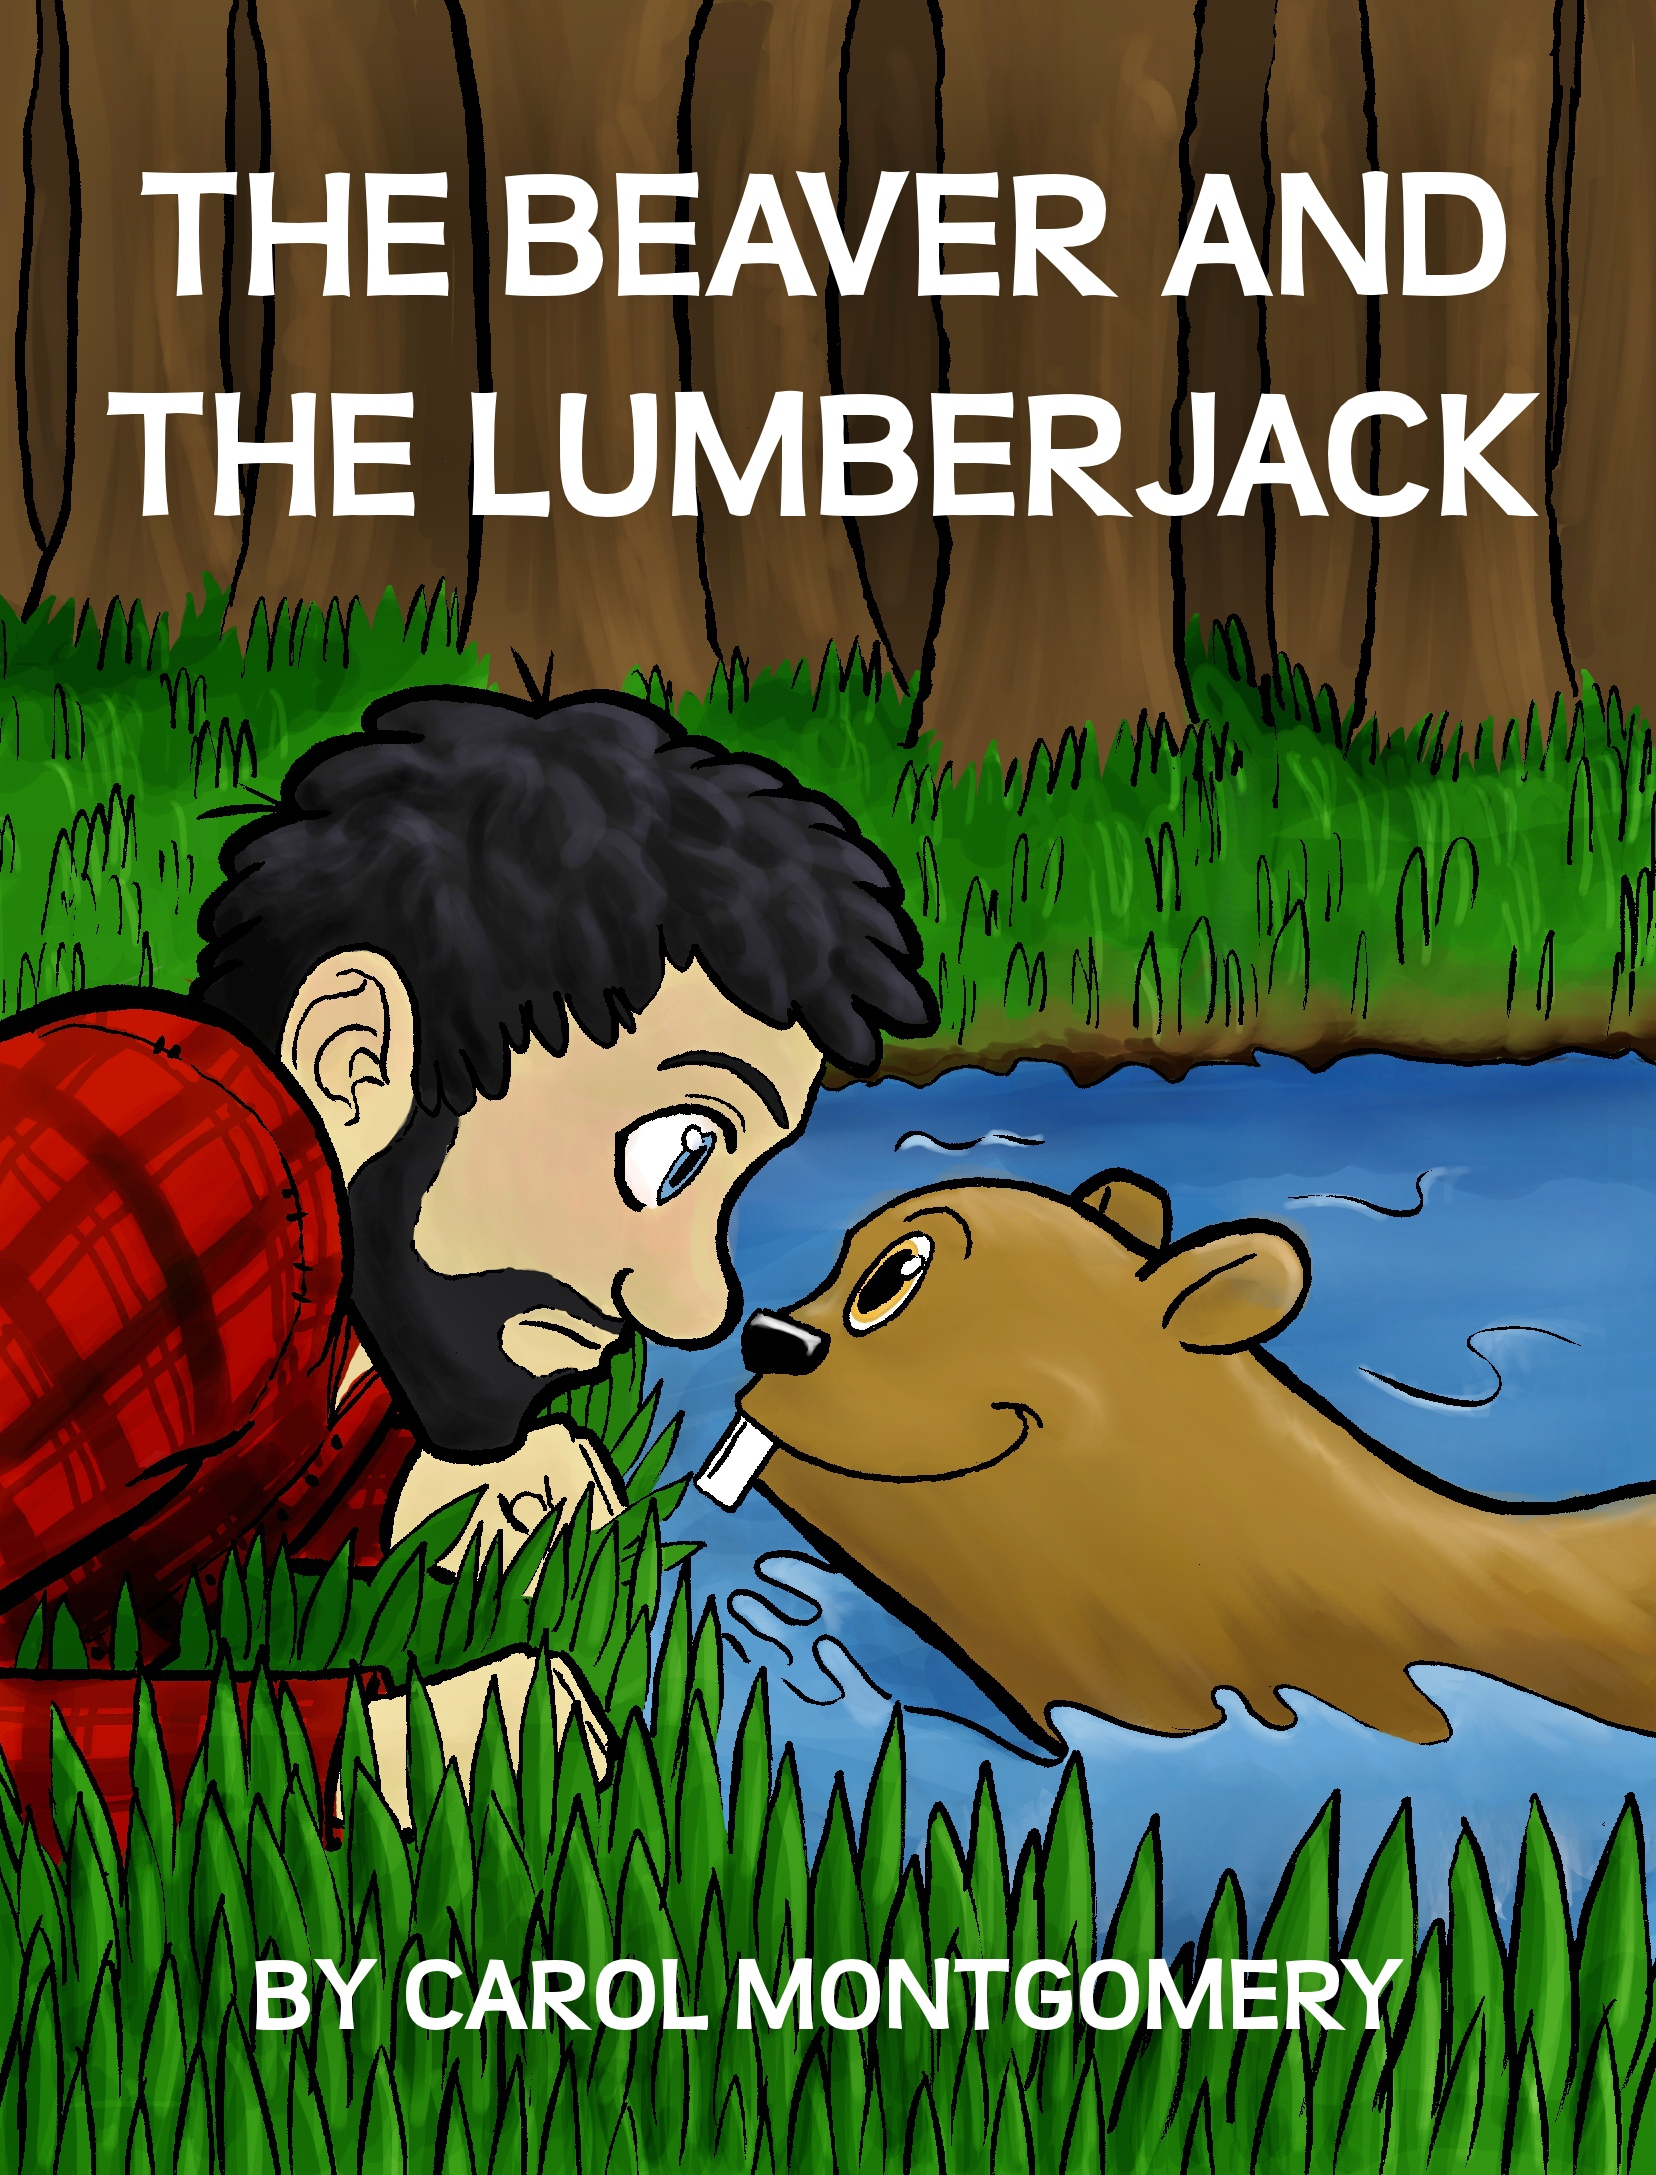 Beaver and the Lumberjack from Aesop's Fables